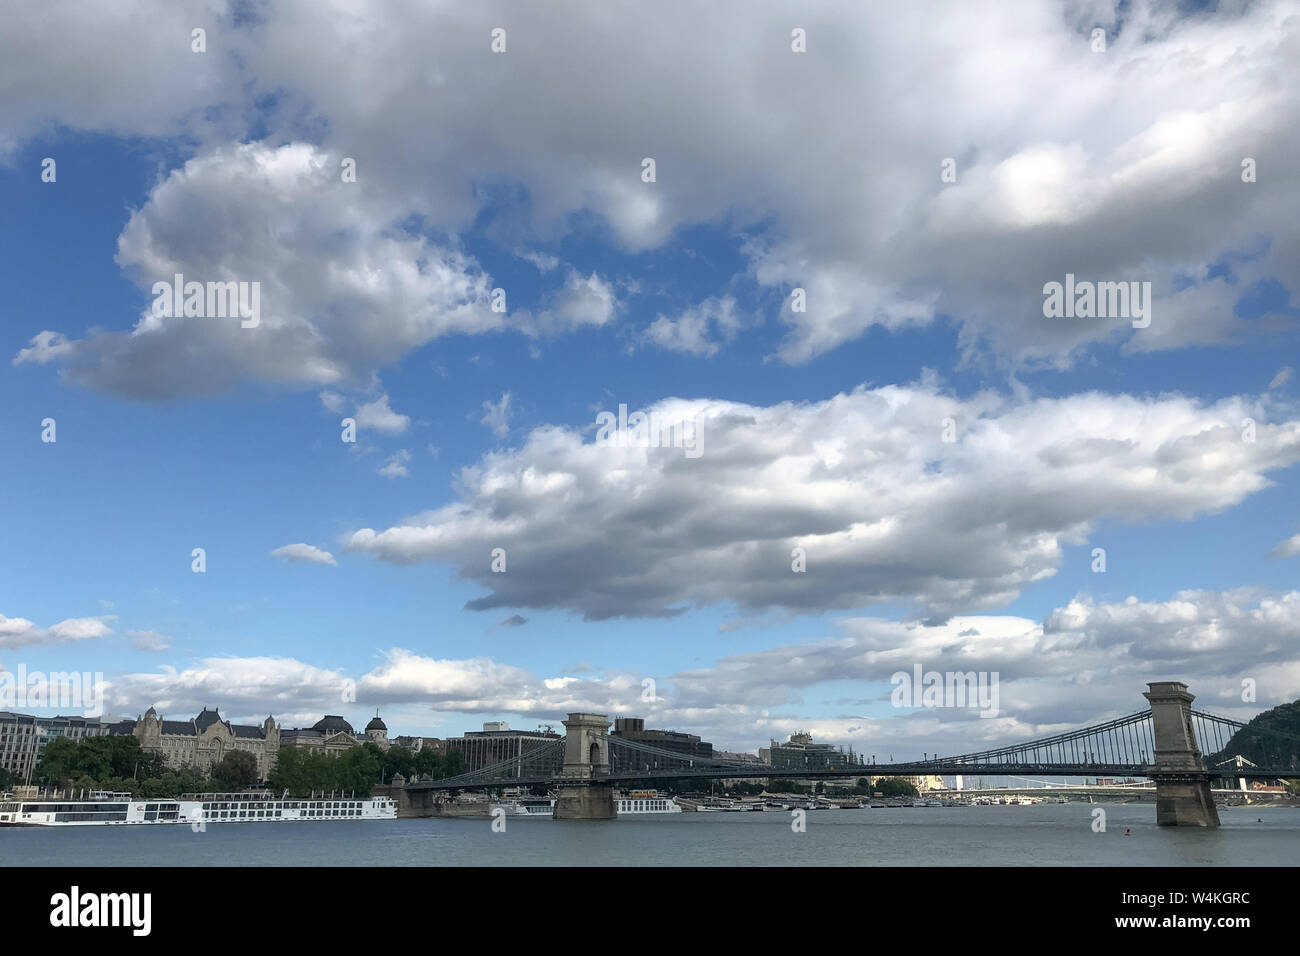 Budapest, Hungary. 23rd July, 2019. Clouds float over the Chain Bridge in downtown Budapest, Hungary, on July 23, 2019. Credit: Attila Volgyi/Xinhua/Alamy Live News Stock Photo